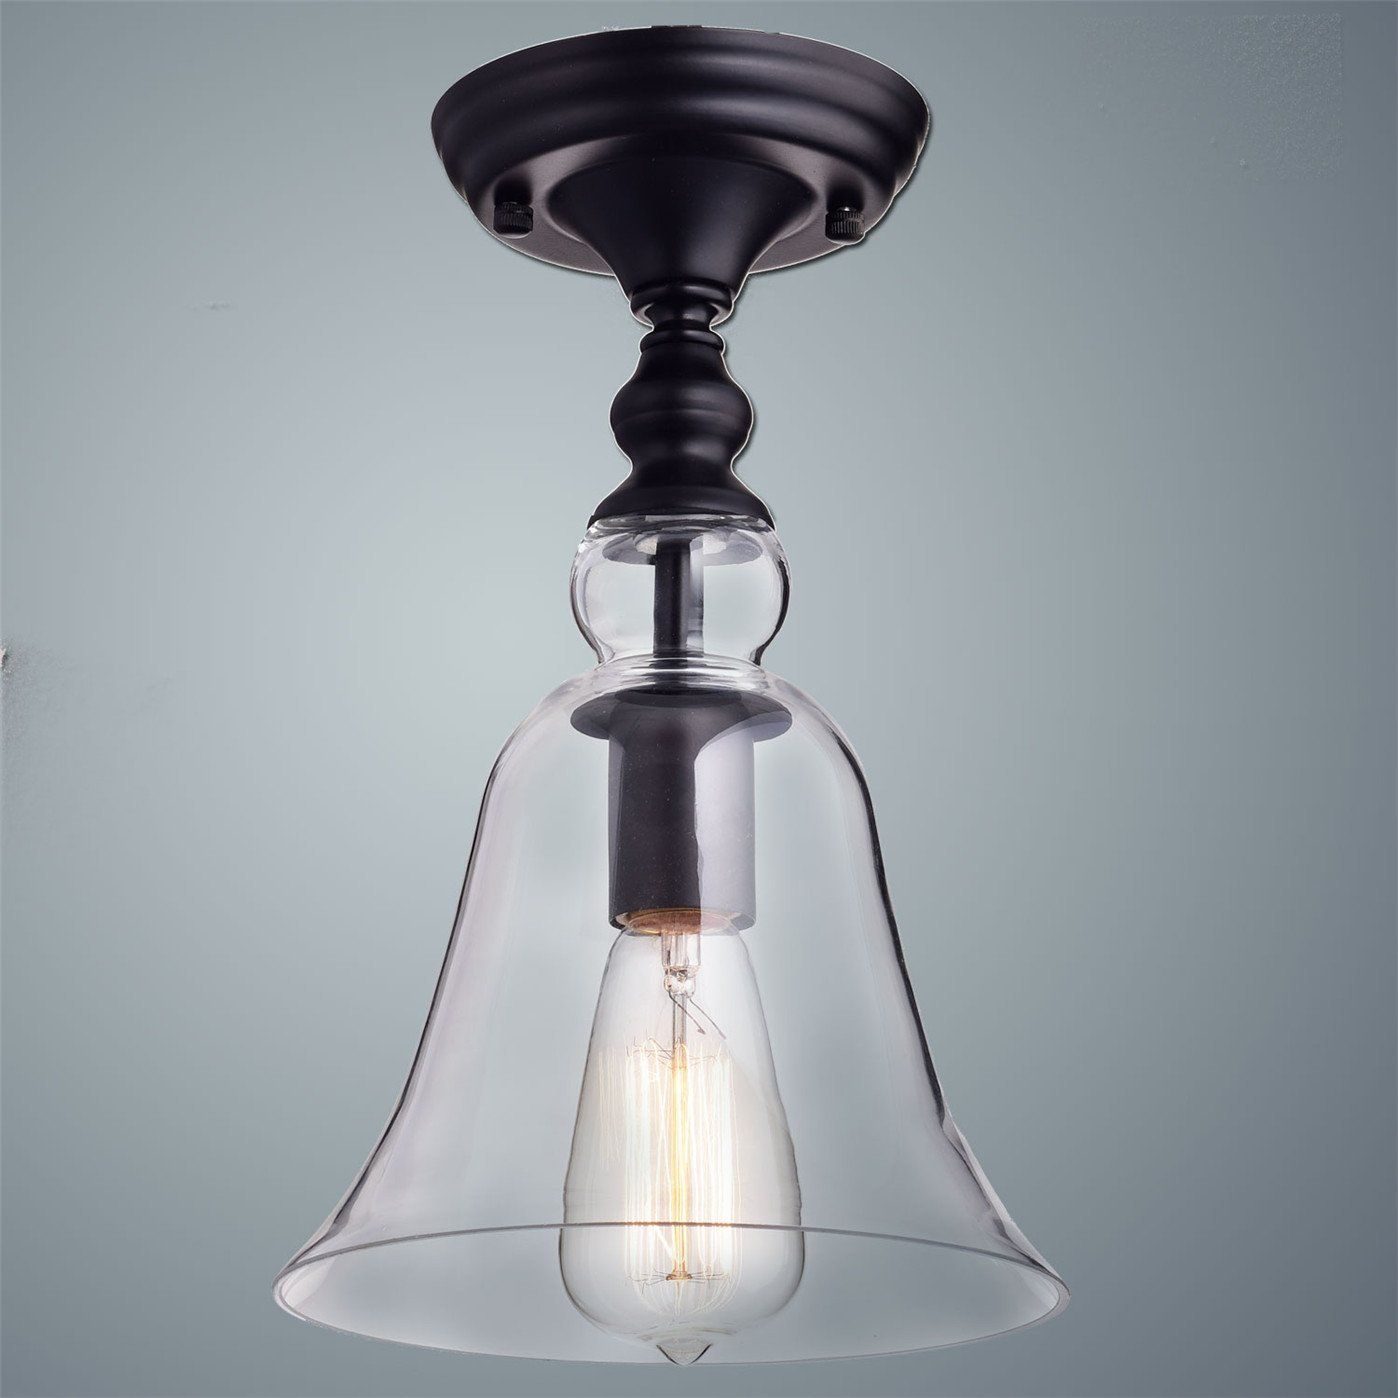 CLAXY Ecopower Vintage Hanging Big Bell Glass Shade Ceiling Light- 1 ...